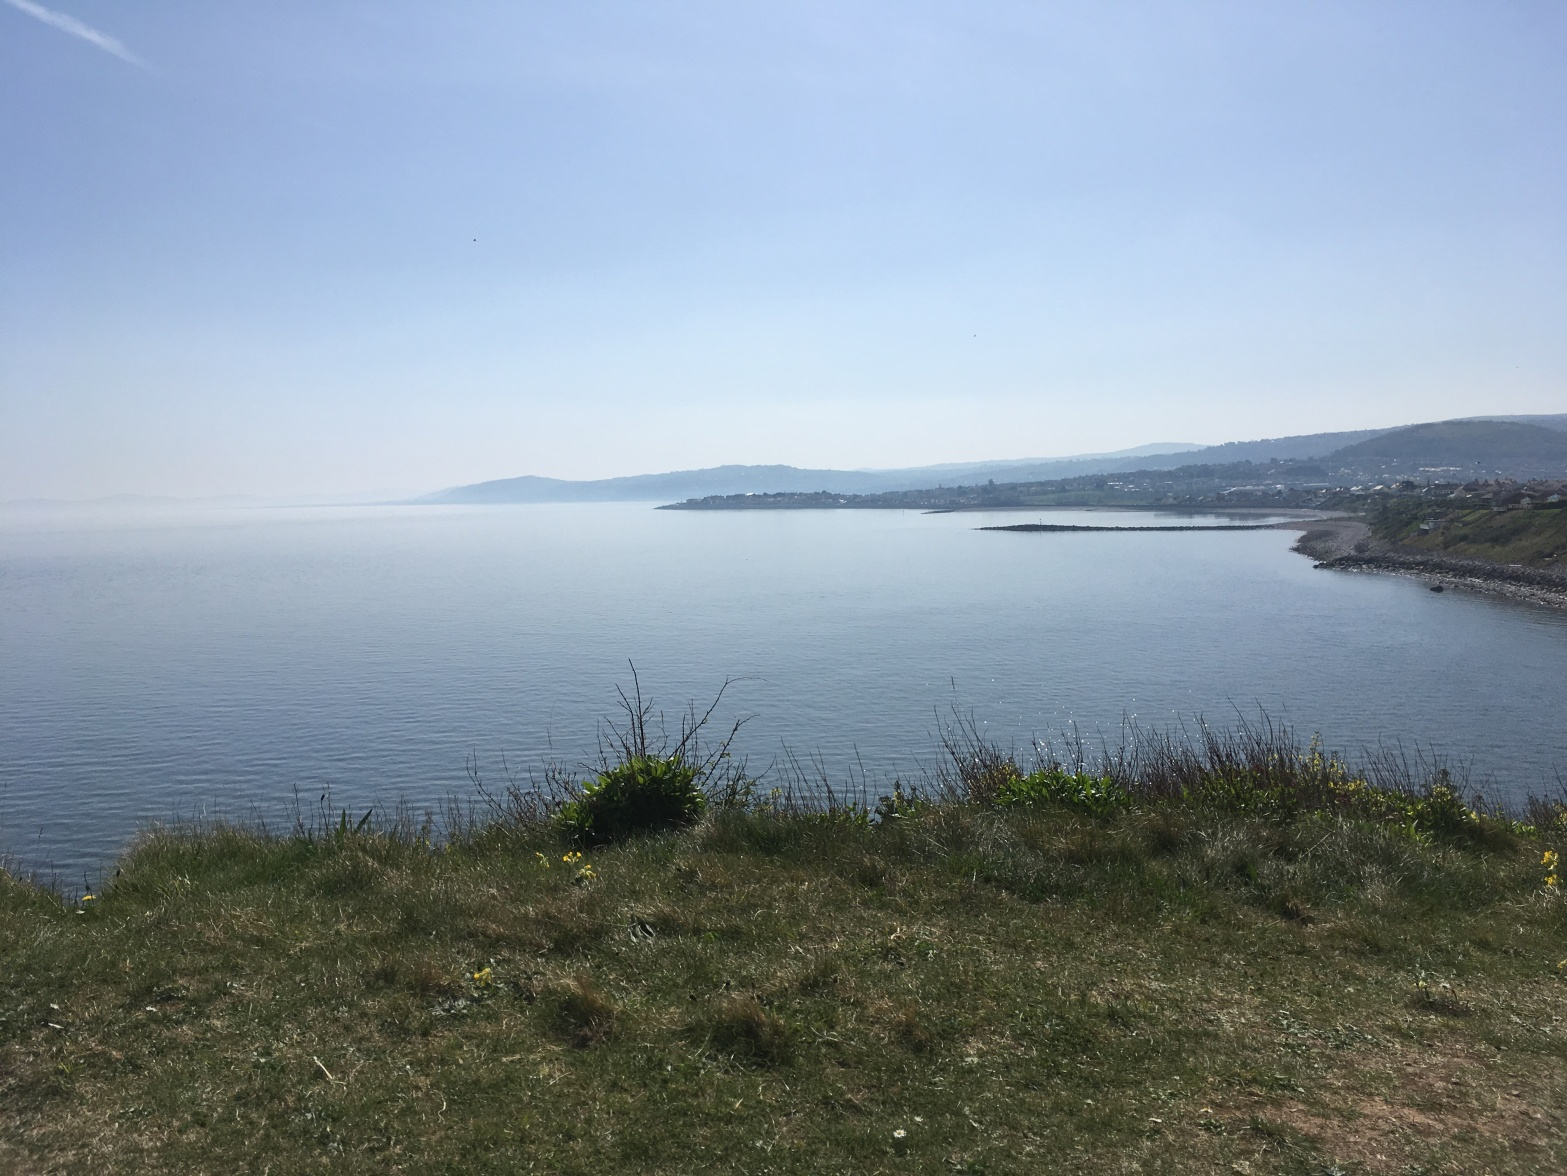 A view from the top of the Little Orme towards Penrhyn Bay and Rhos-on-Sea. The sea is calm and the sky has a few hazy clouds.